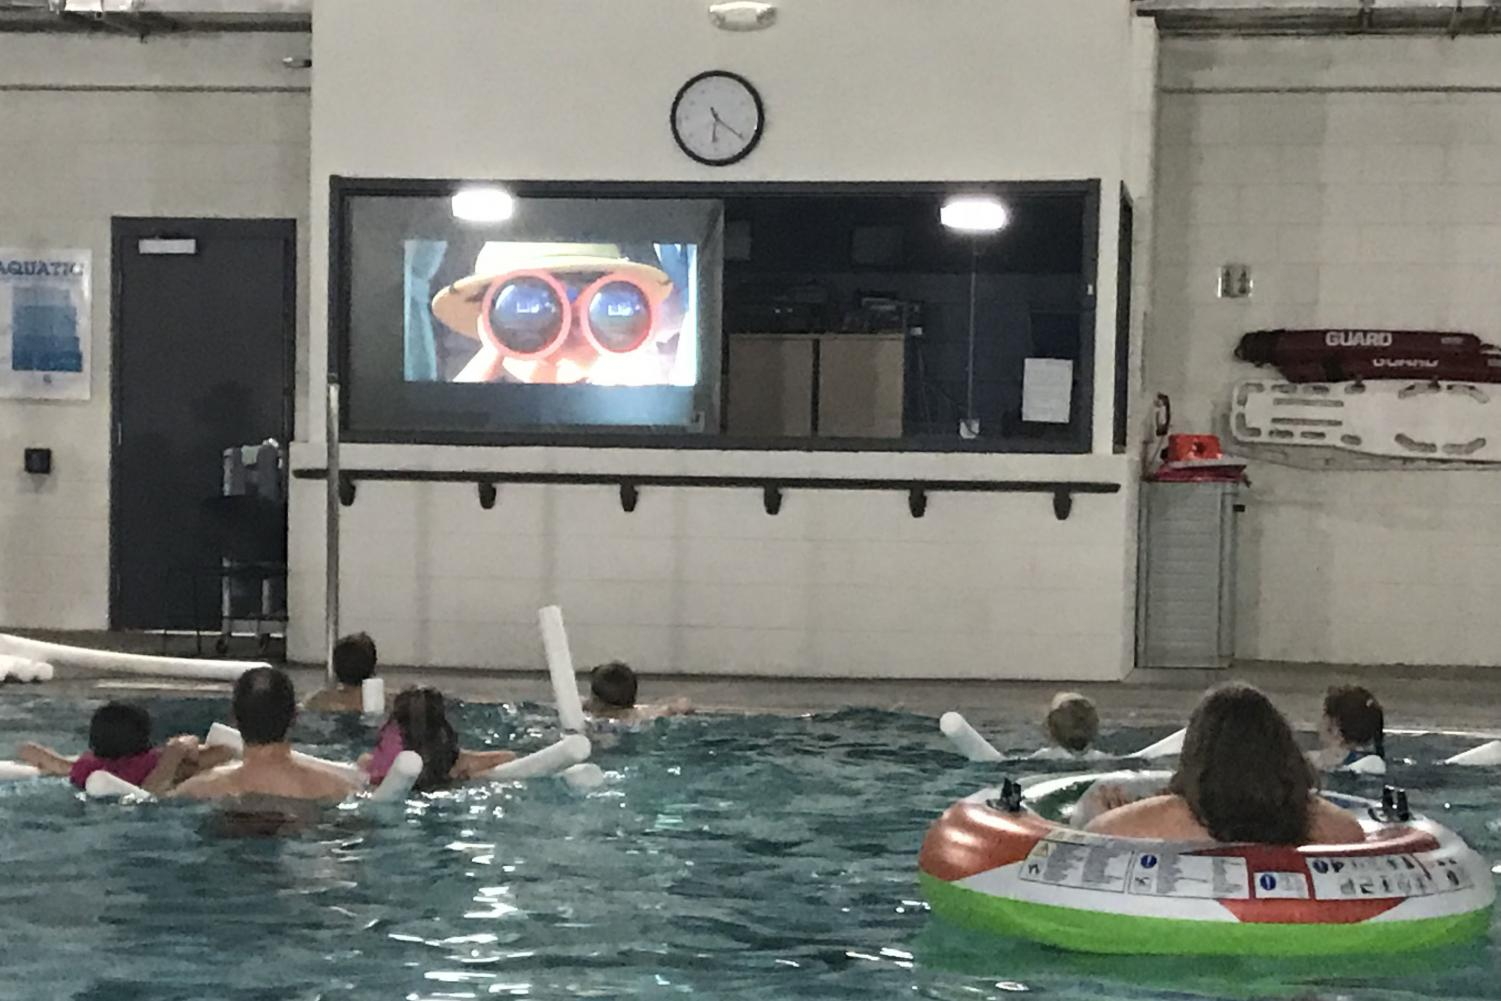 The public attends the movie while enjoying the comfort of a pool.